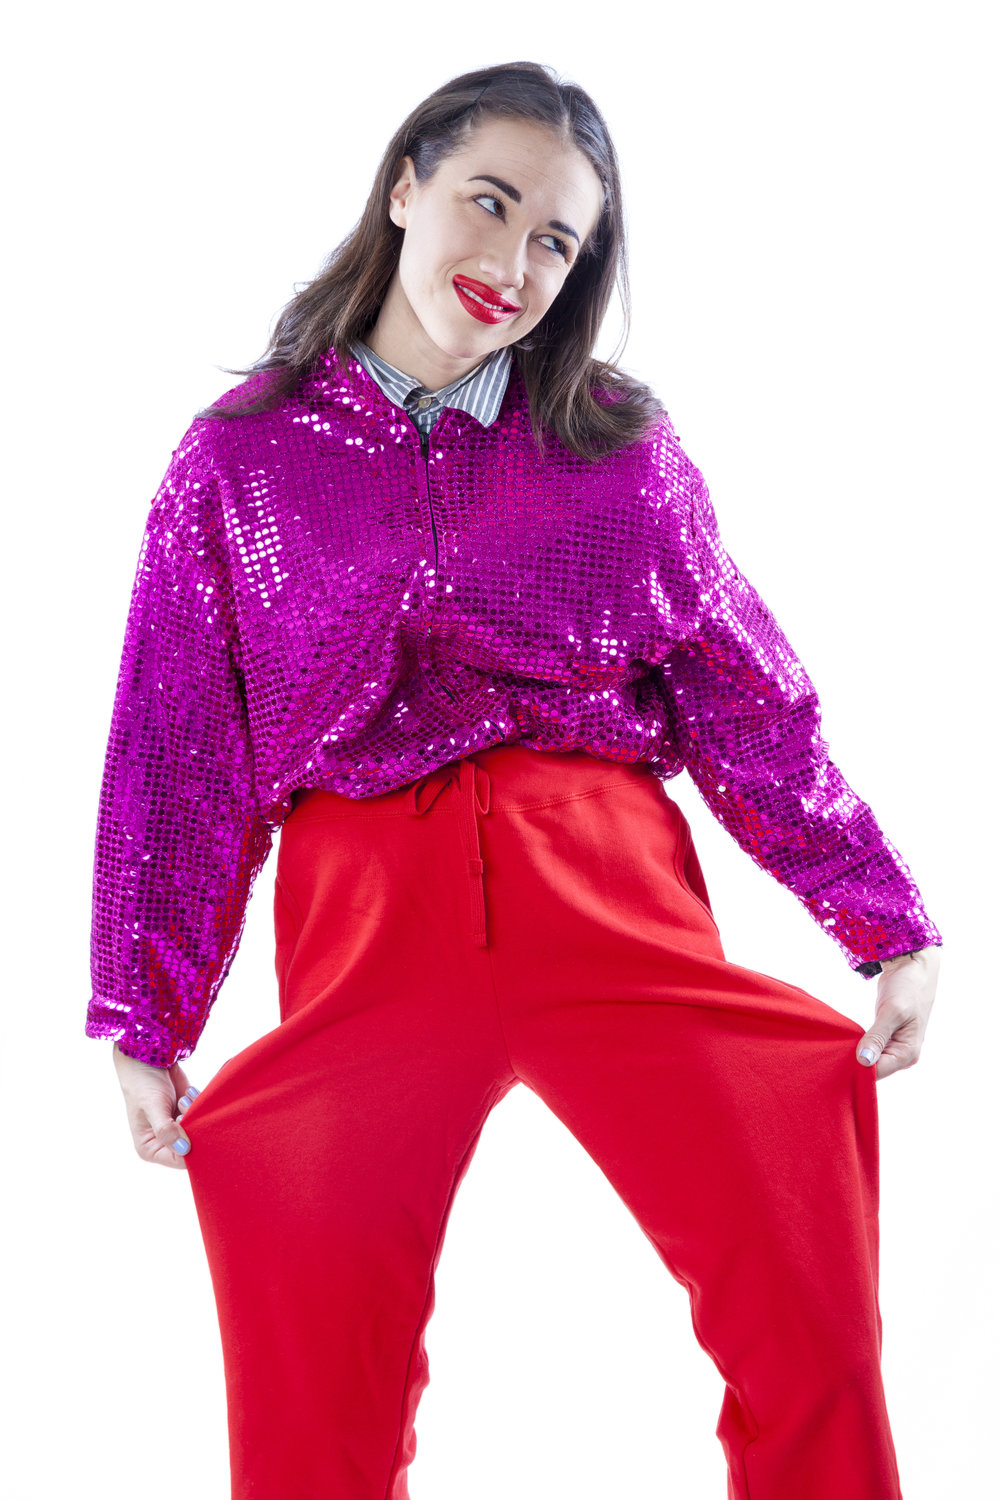 Miranda Sings 2 - USE.jpg